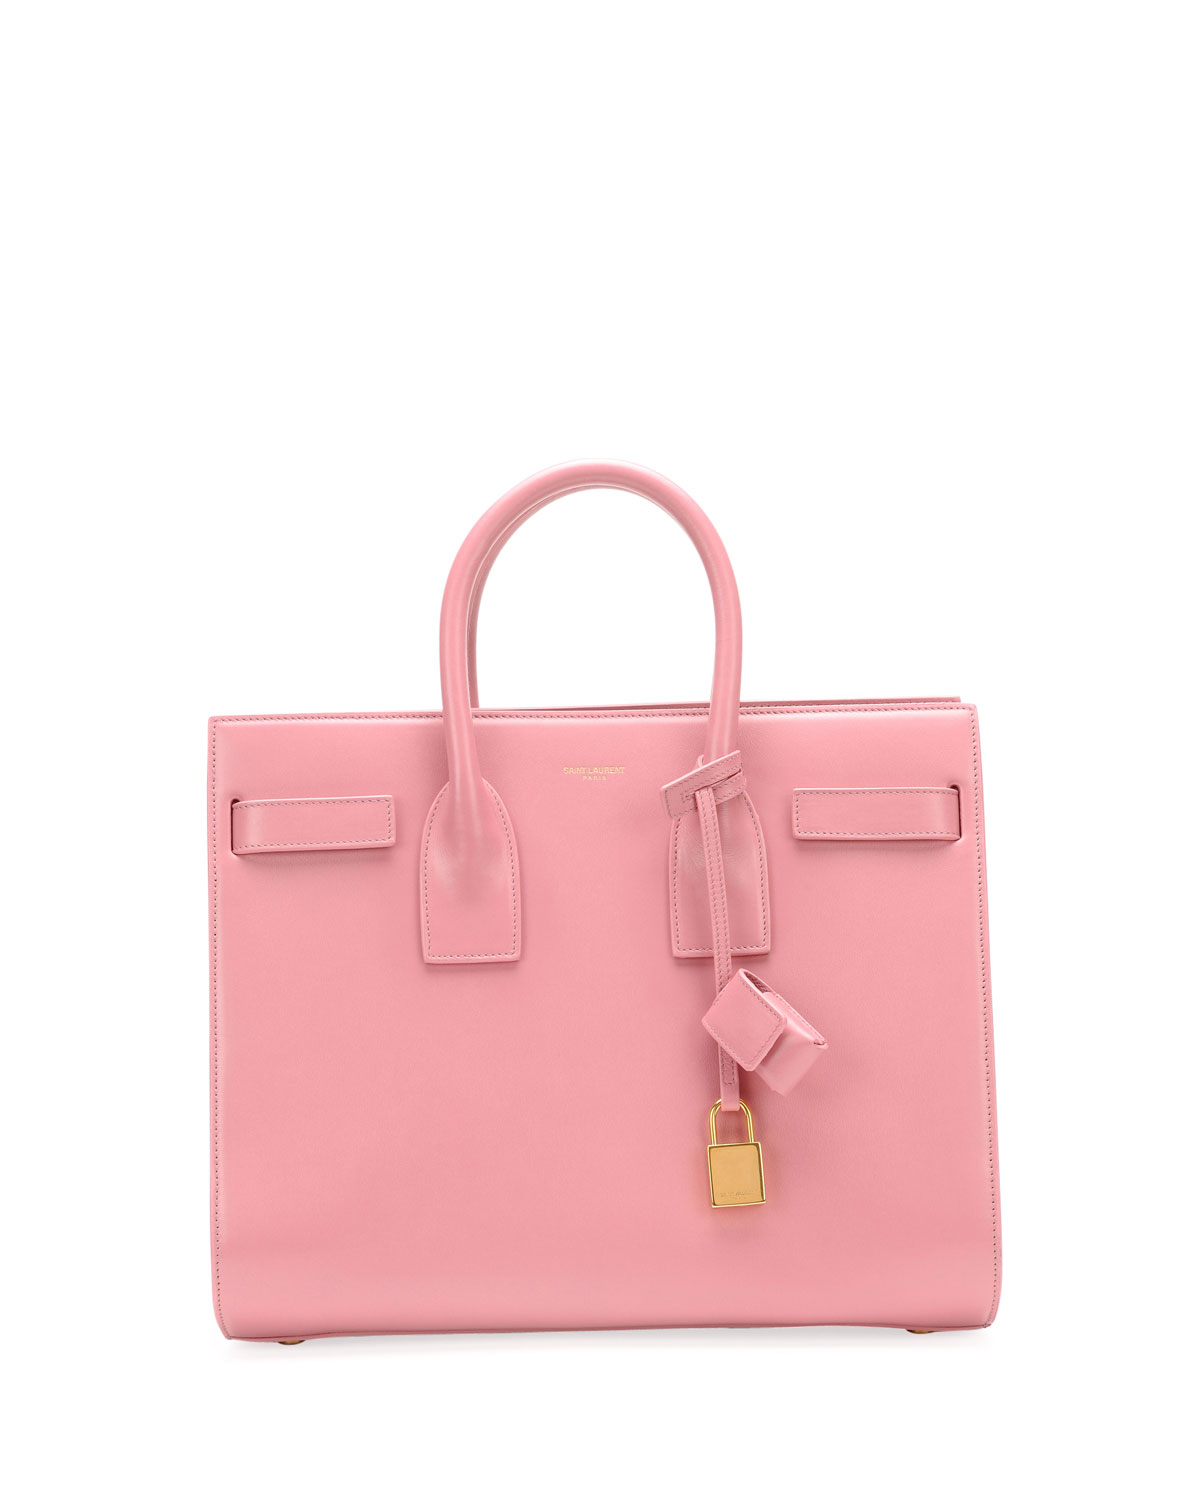 saint laurent sac de jour small carryall bag pink in pink lyst. Black Bedroom Furniture Sets. Home Design Ideas